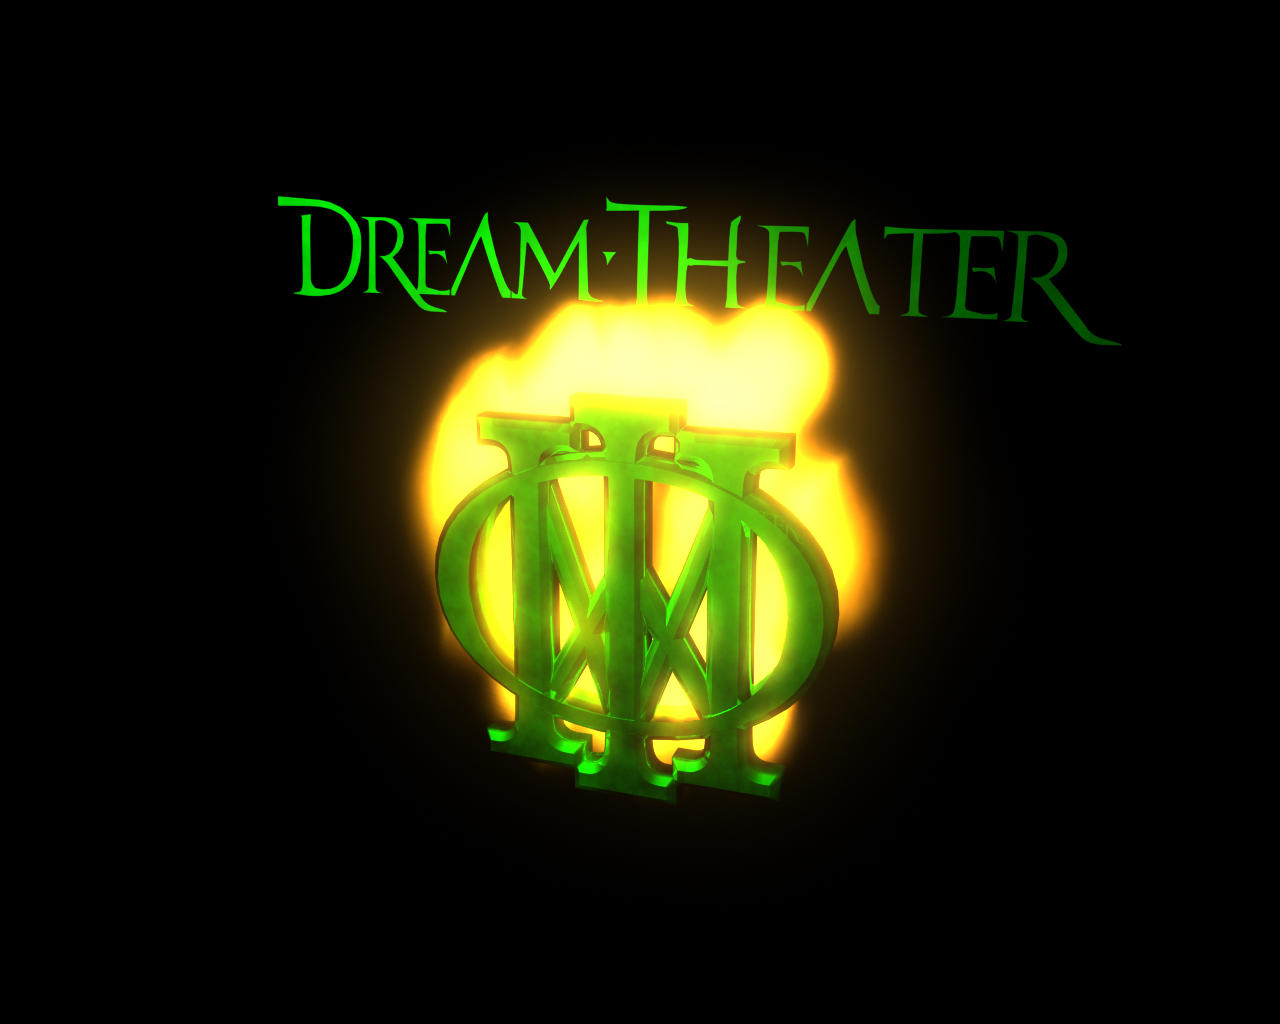 Dream theater logo on fire by pedroalbertini on deviantart